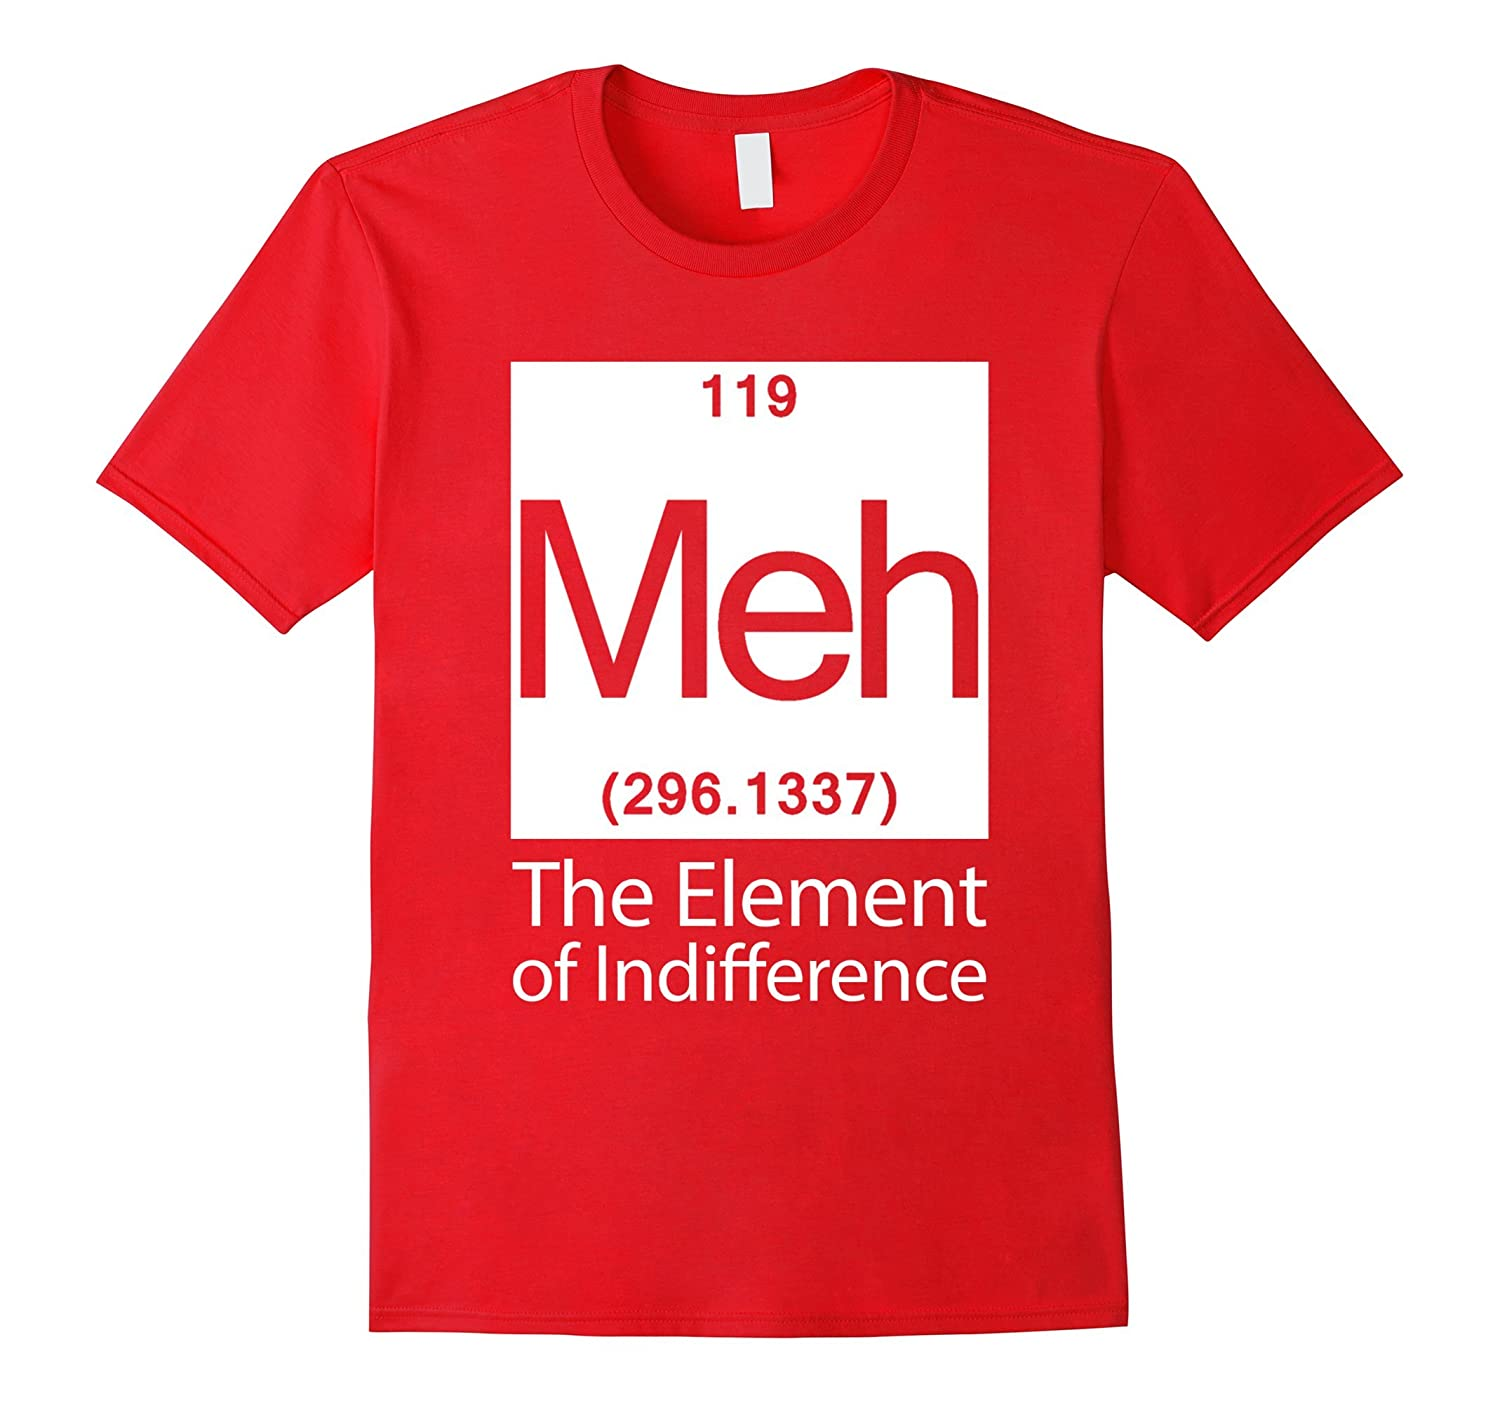 The Elemen 119 Meh Of Indifference, Element Meh T-Shirt-BN